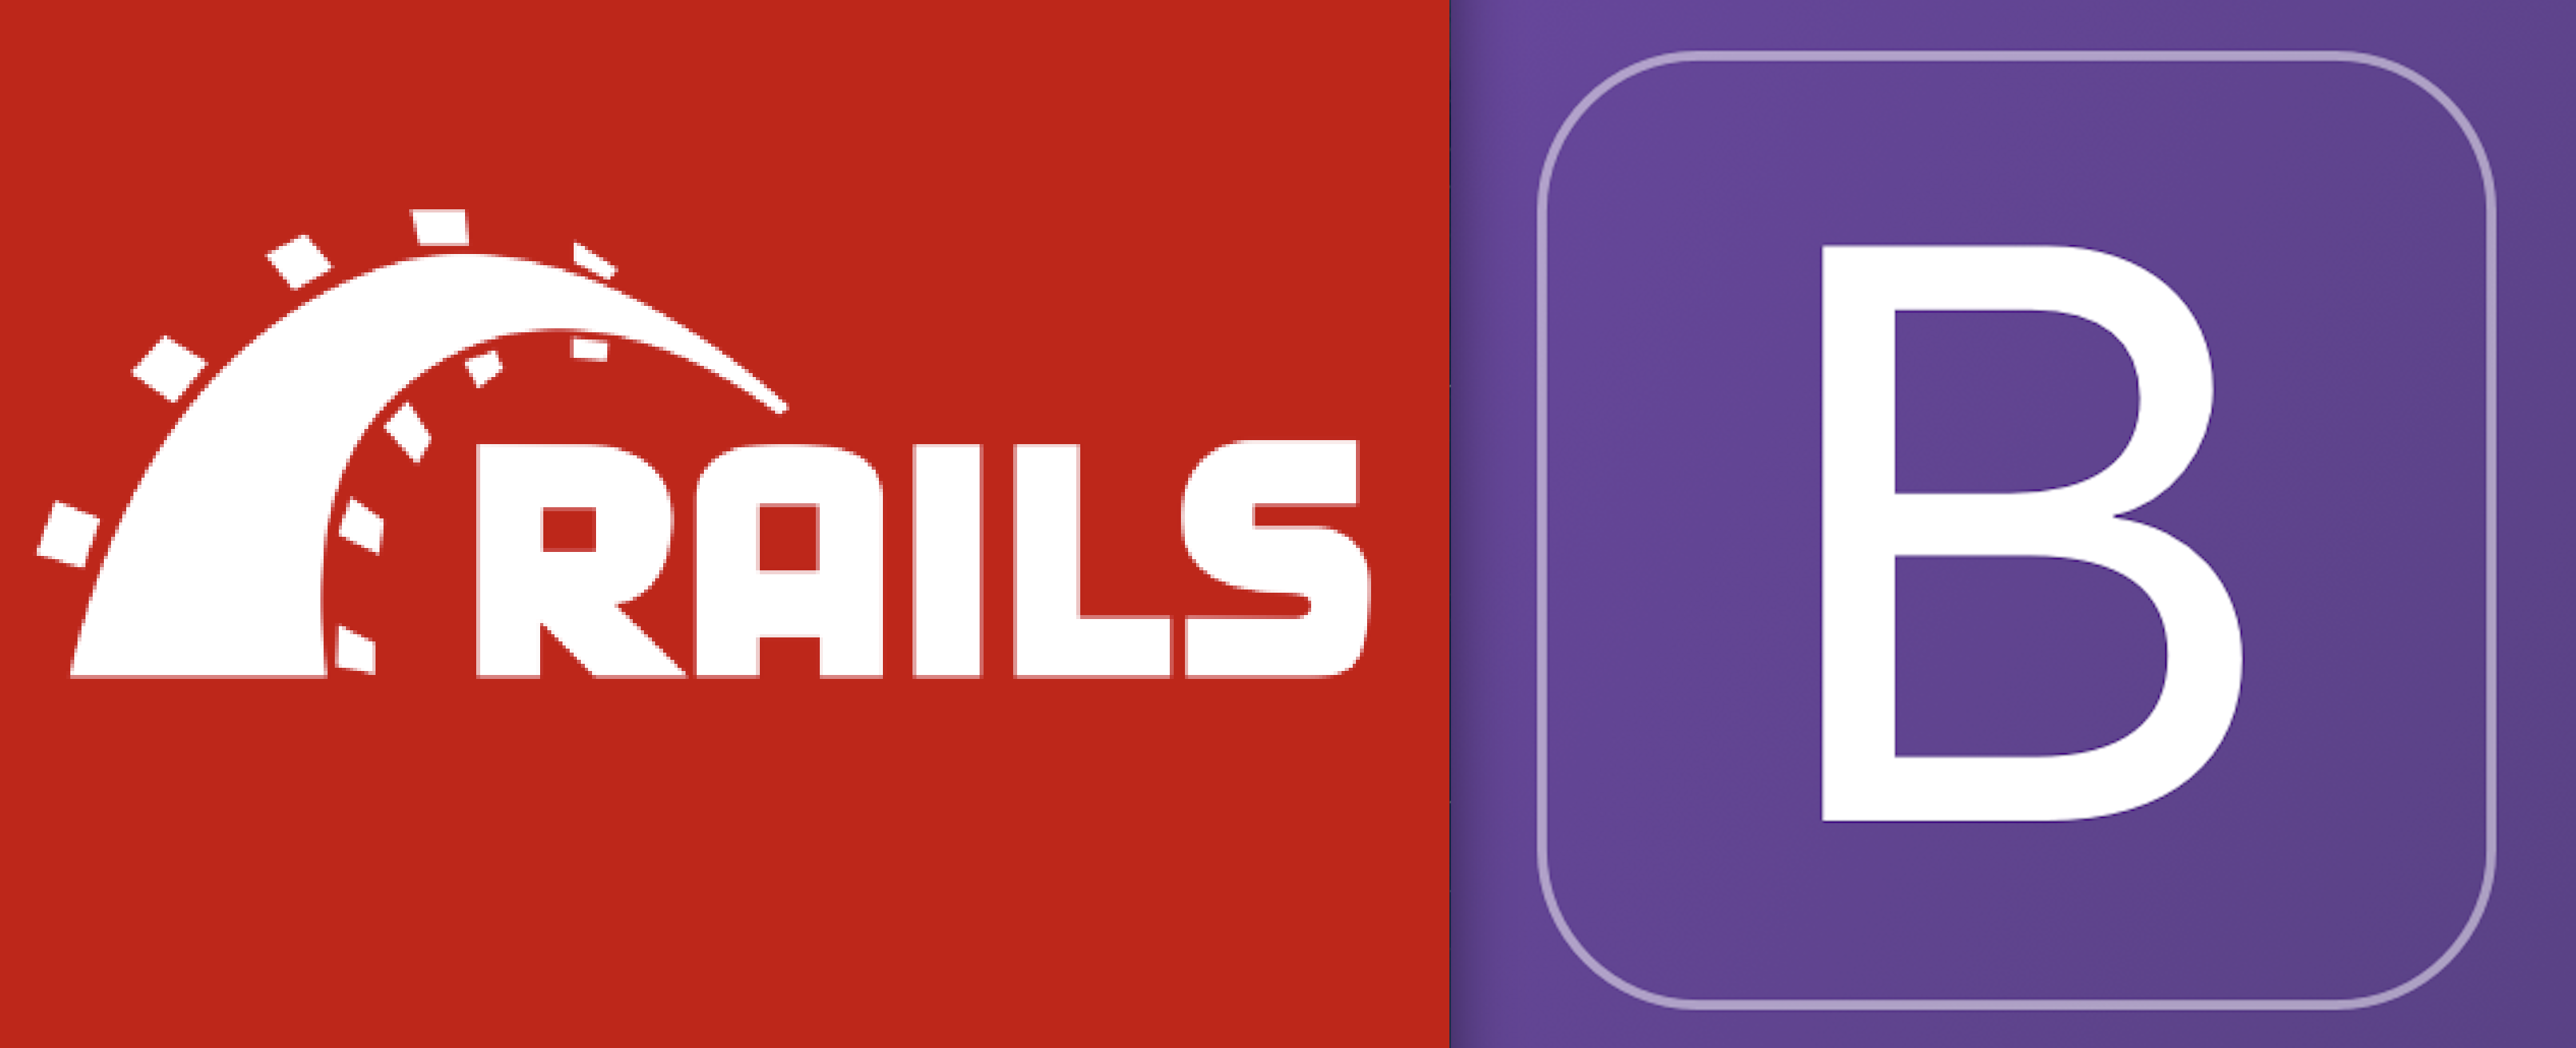 How to add Bootstrap 4 to a Rails 5 app - Bianca Power - Medium